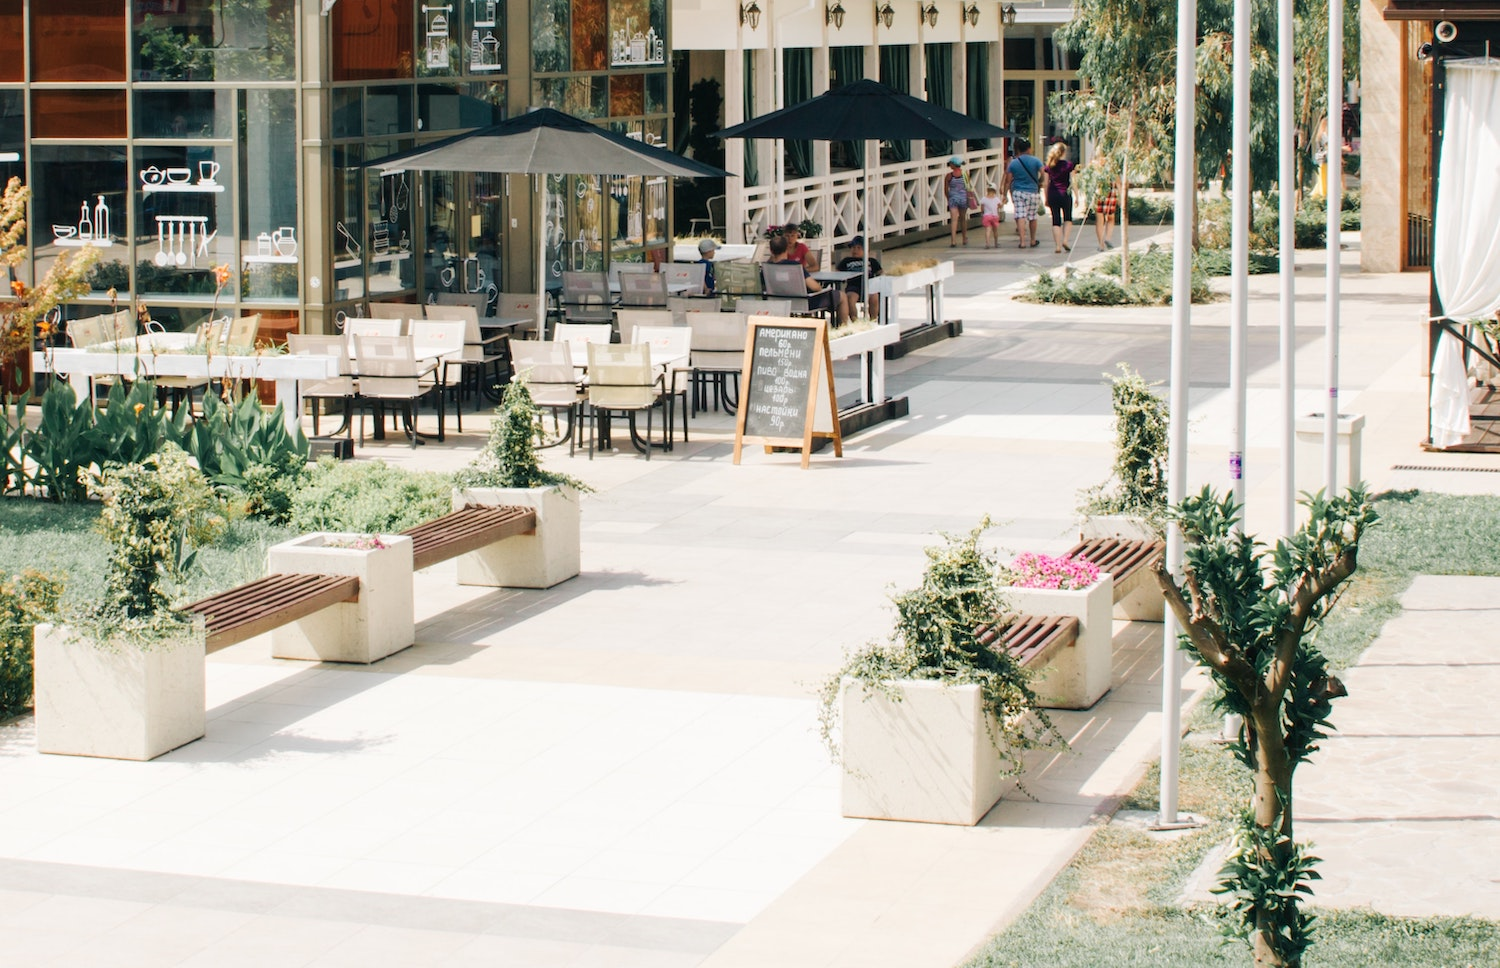 A hip city with al fresco dining on a beautiful sunny day